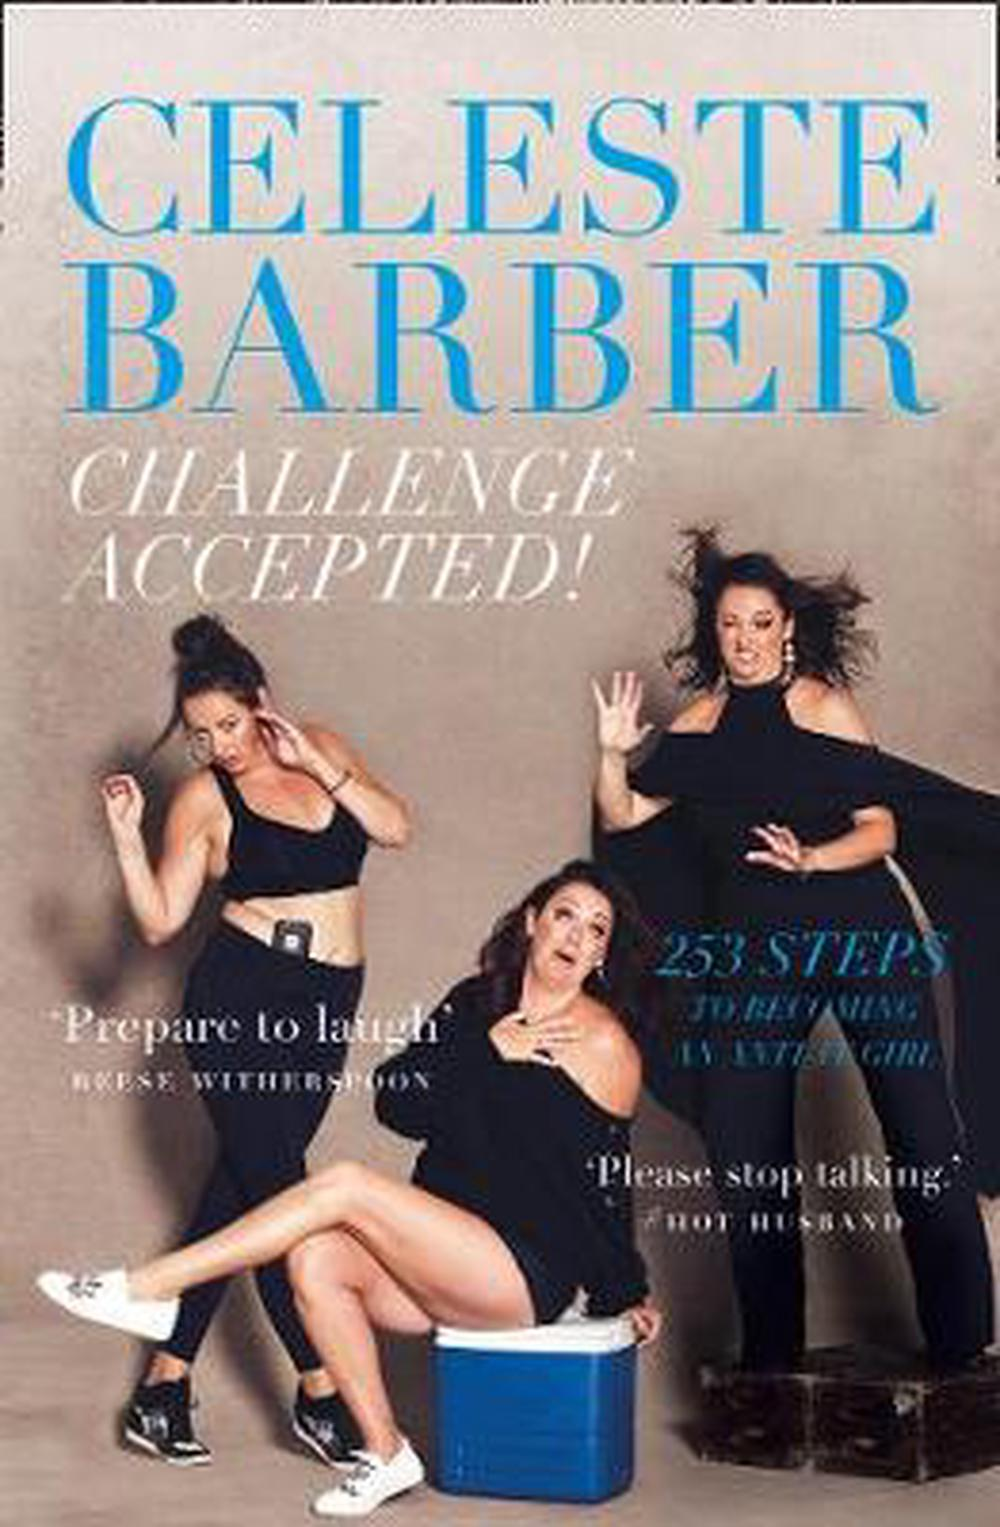 Challenge Accepted!: 253 Steps to Becoming an Anti-It Girl by Celeste Barber, ISBN: 9780008327248